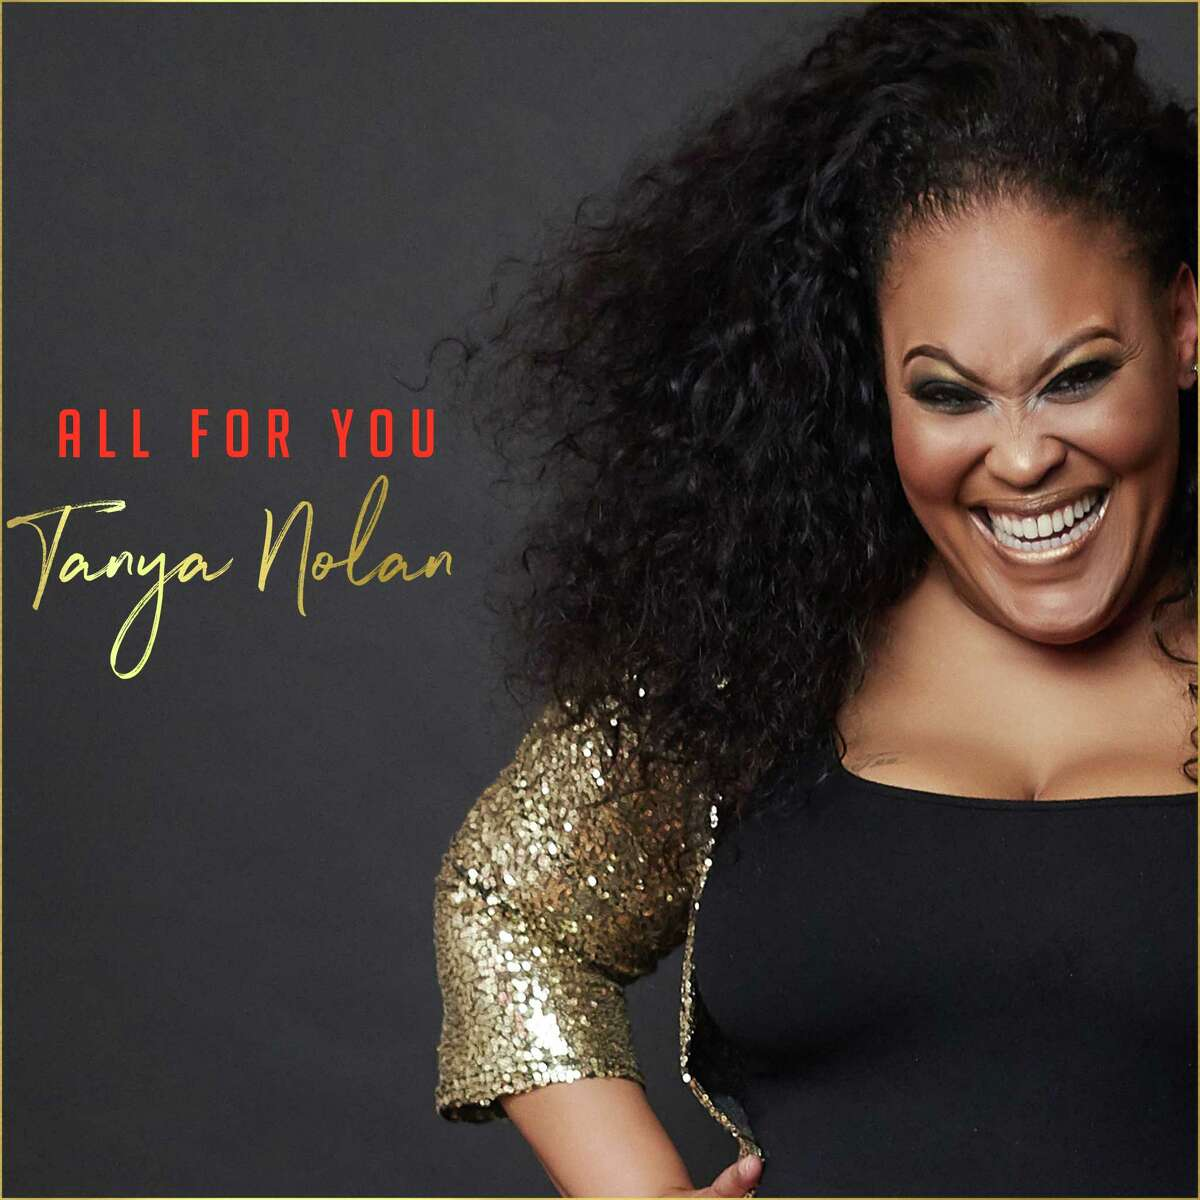 Galveston singer Tanya Nolan's new single is 'All for You.'